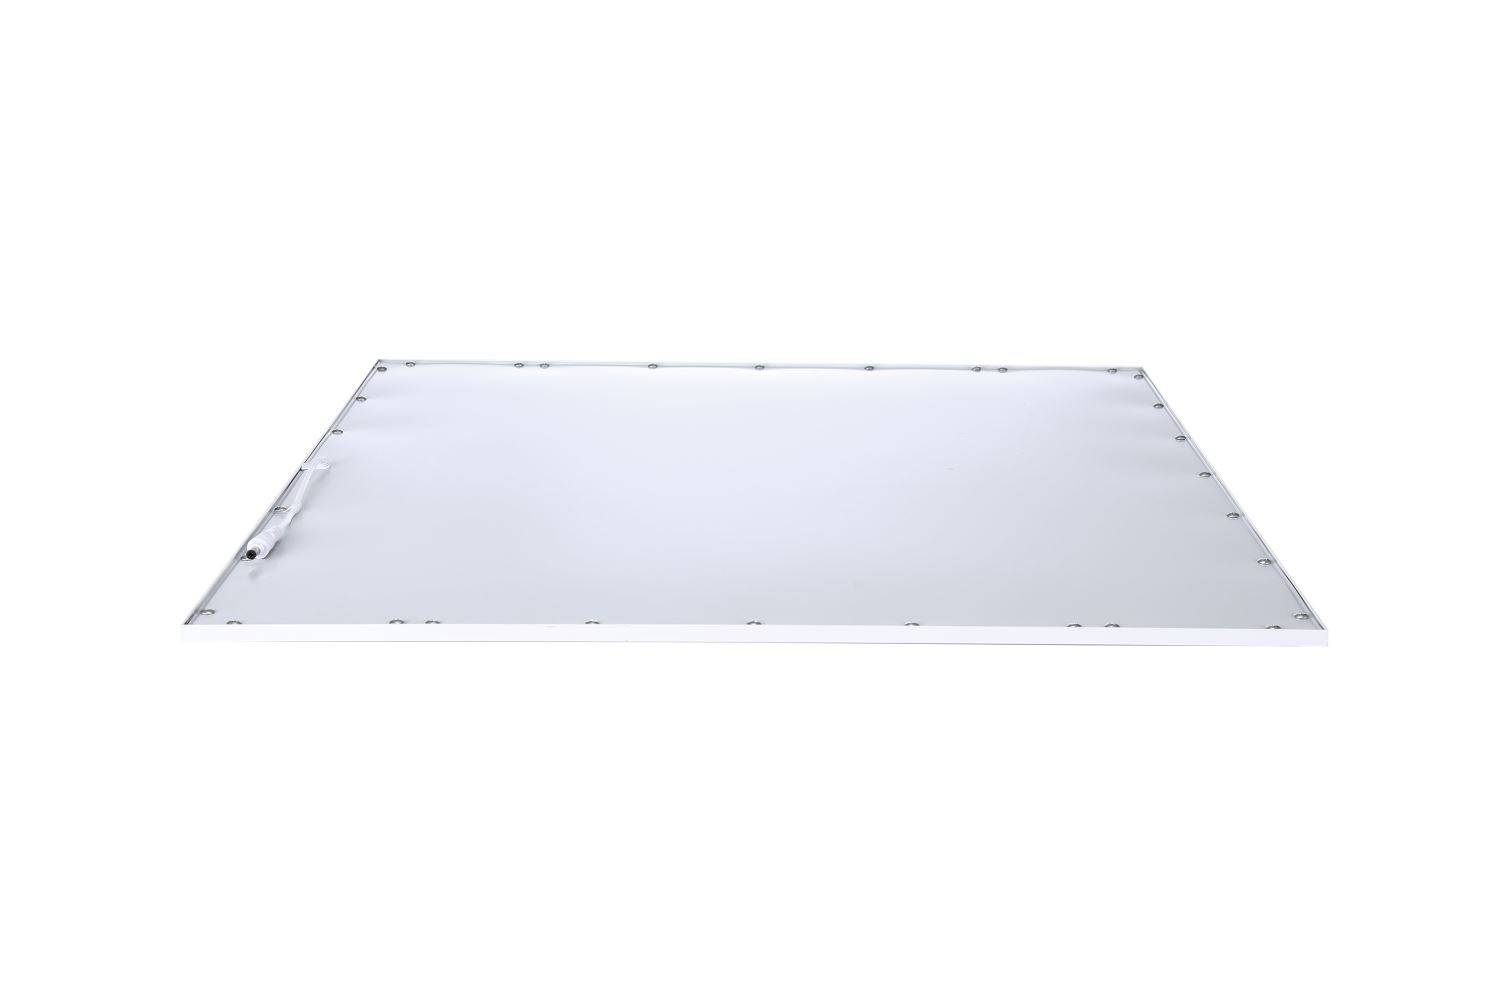 LED panel 60x60 edge-lit panel 600x600 ultra-thin led flat panel light Europe UK CE CB OHS TUV 3